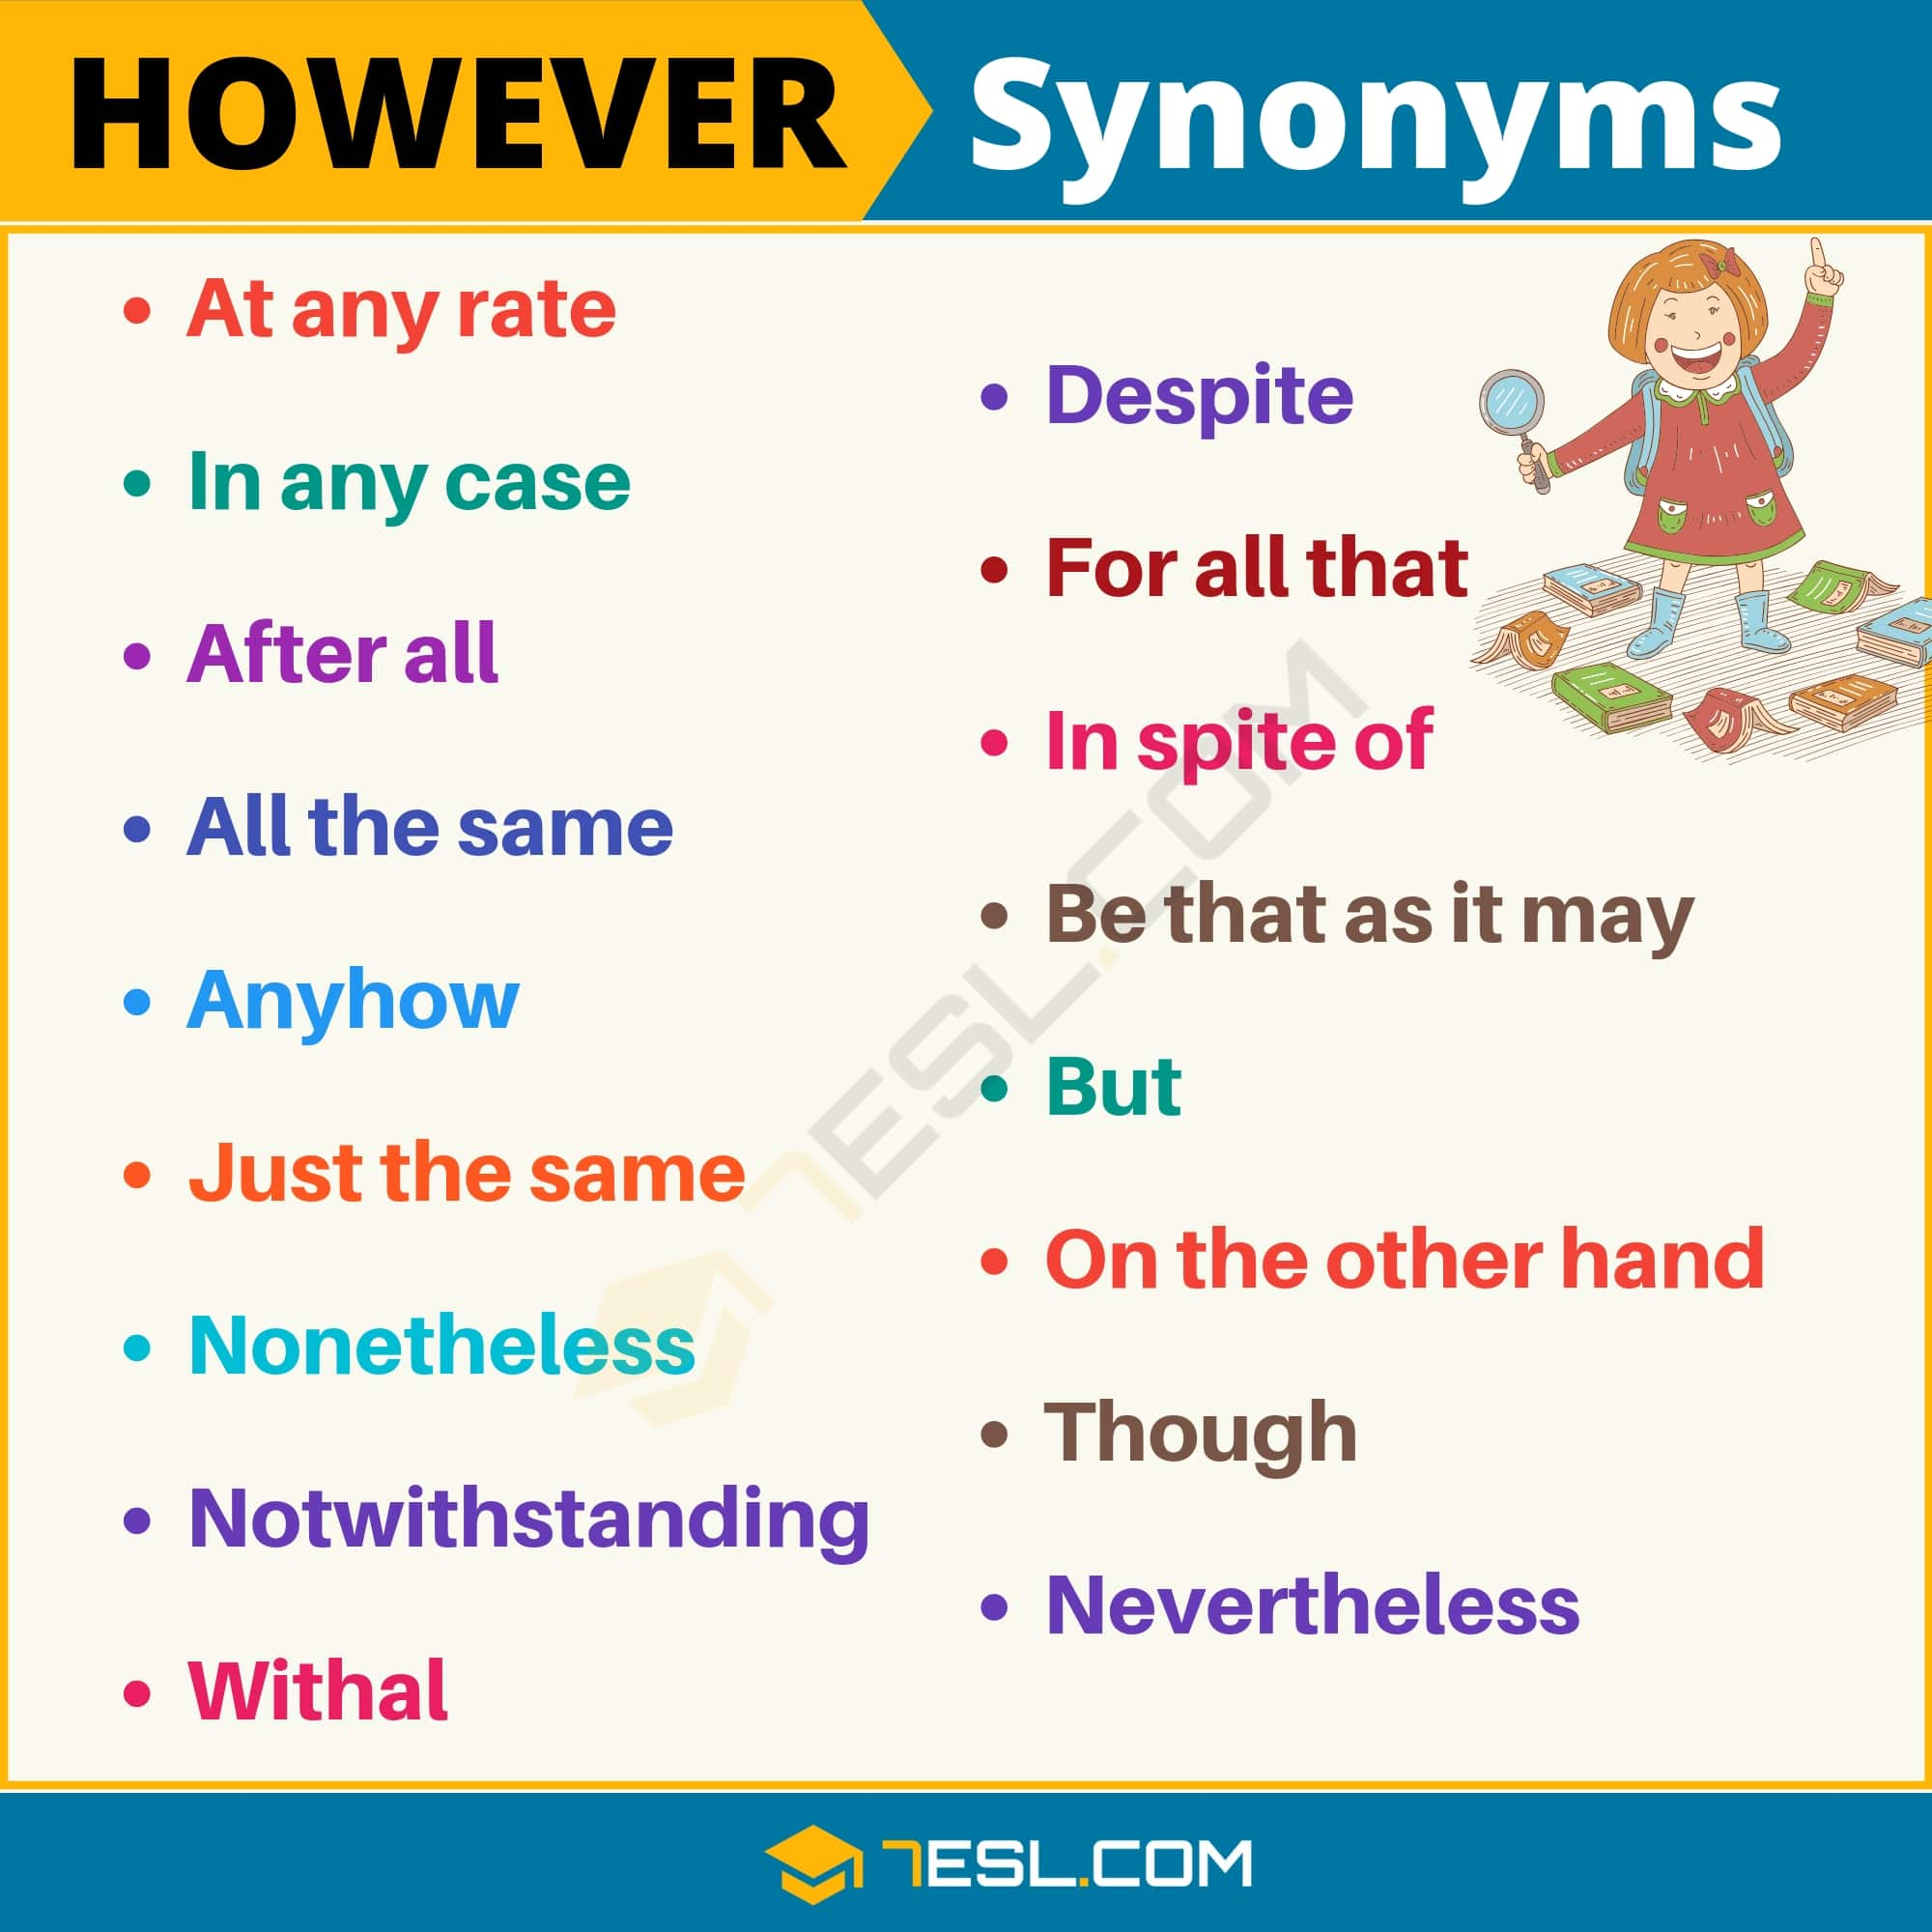 HOWEVER Synonym | Important List of 15+ Synonyms for However in English